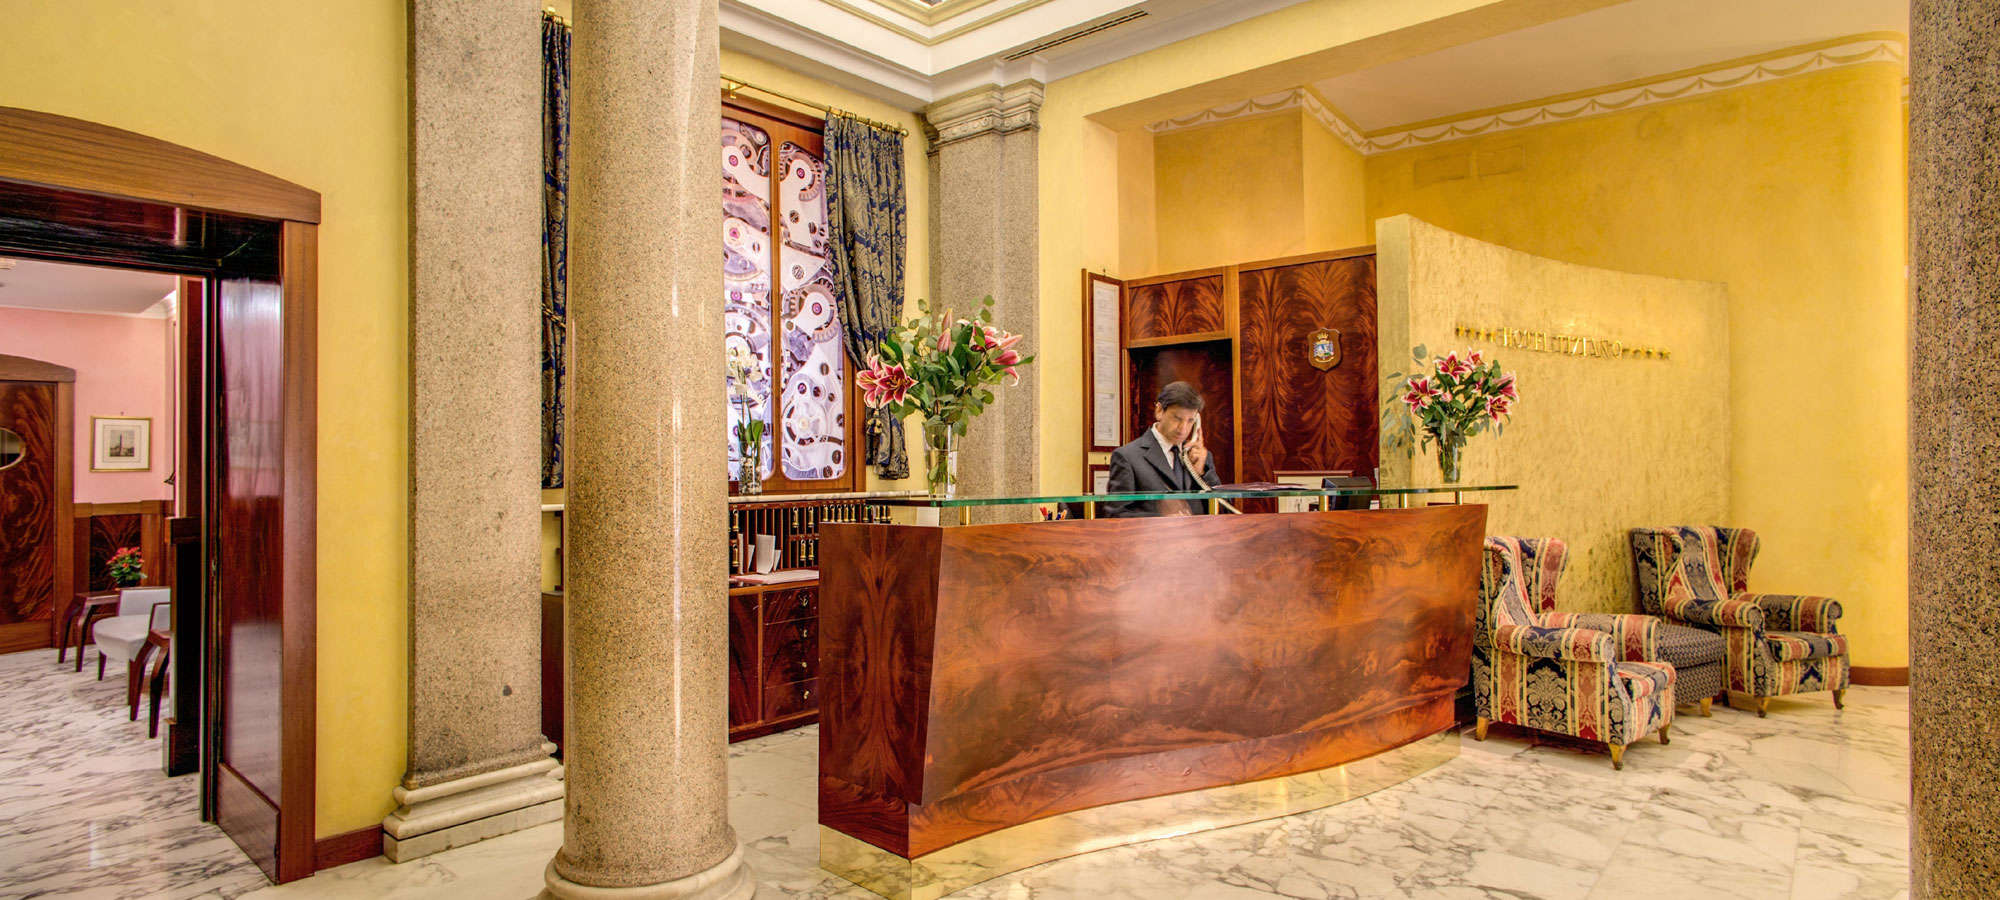 Hotel Tiziano Rome - Reception